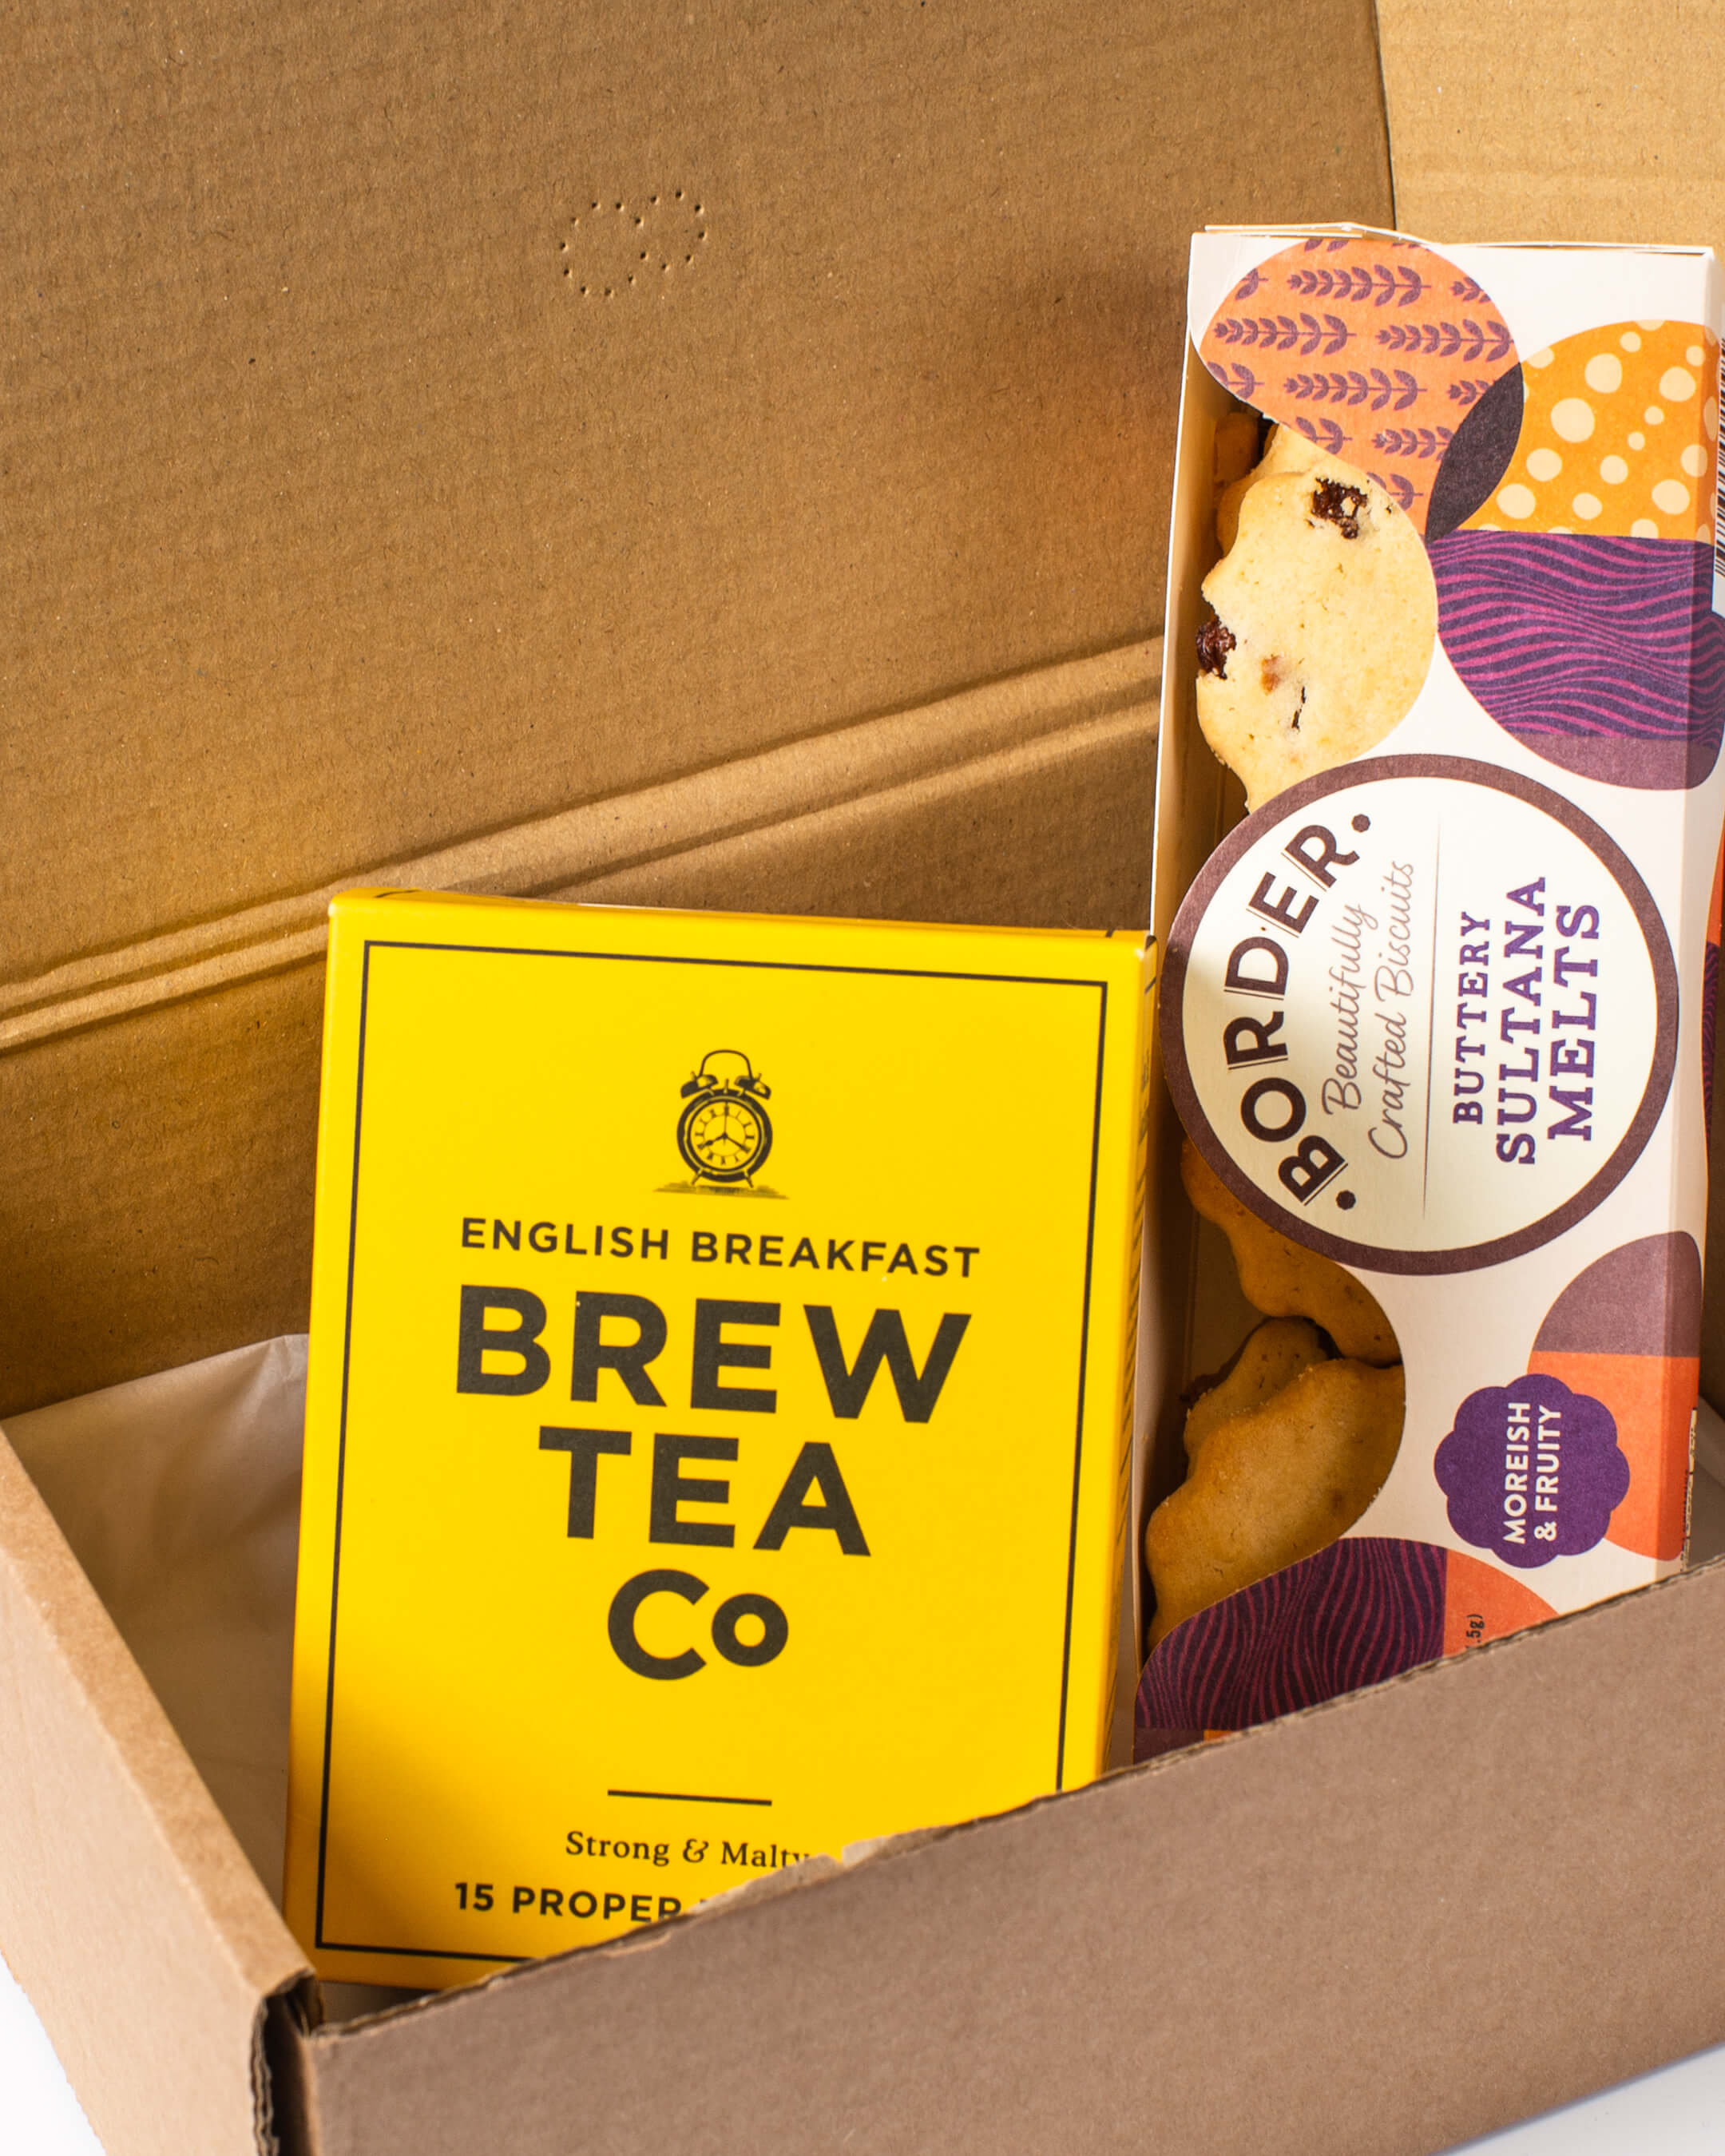 Inside the tea & biscuits box: Box of Brew tea Co. breakfast tea with Border biscuits